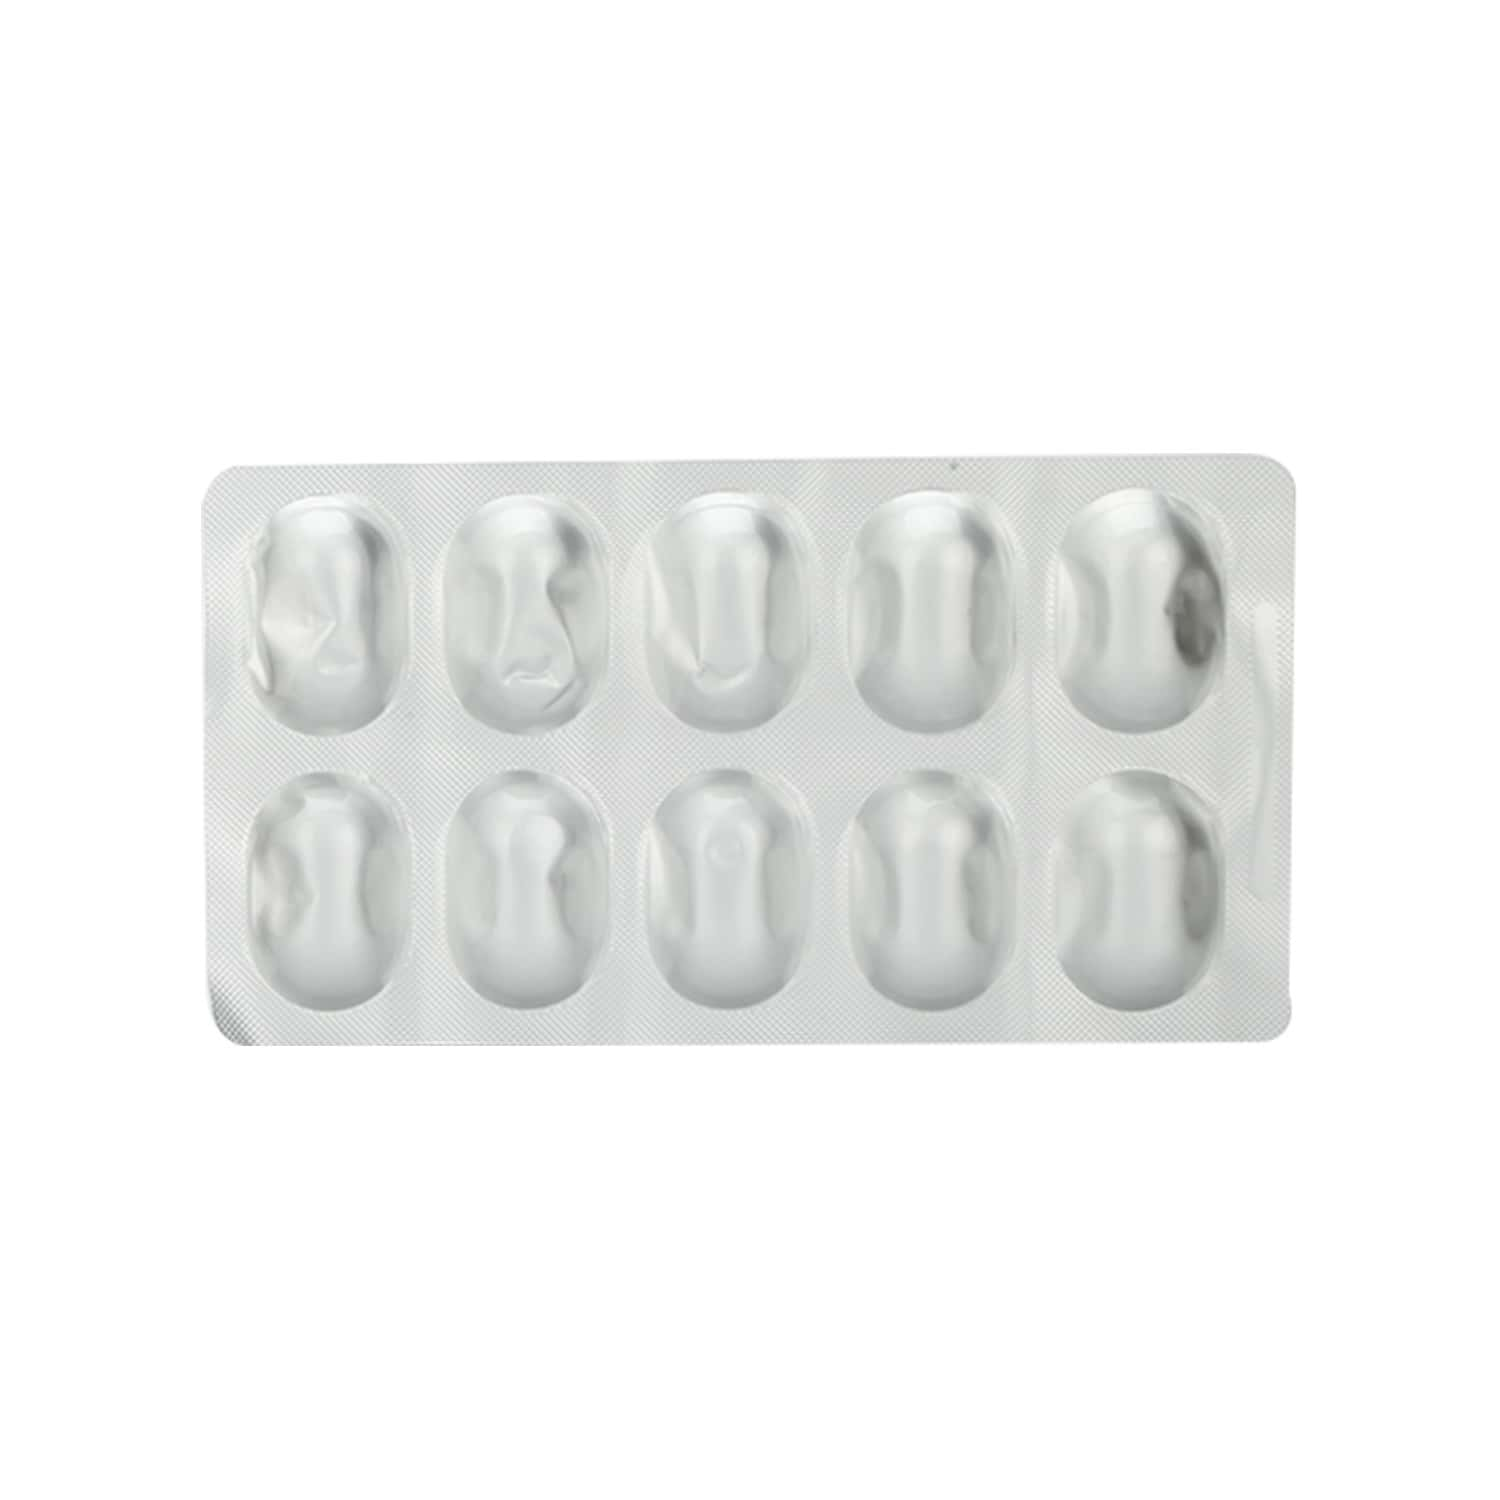 Coq Lc Mitochondrial Energiser Tablet Strip Of 10